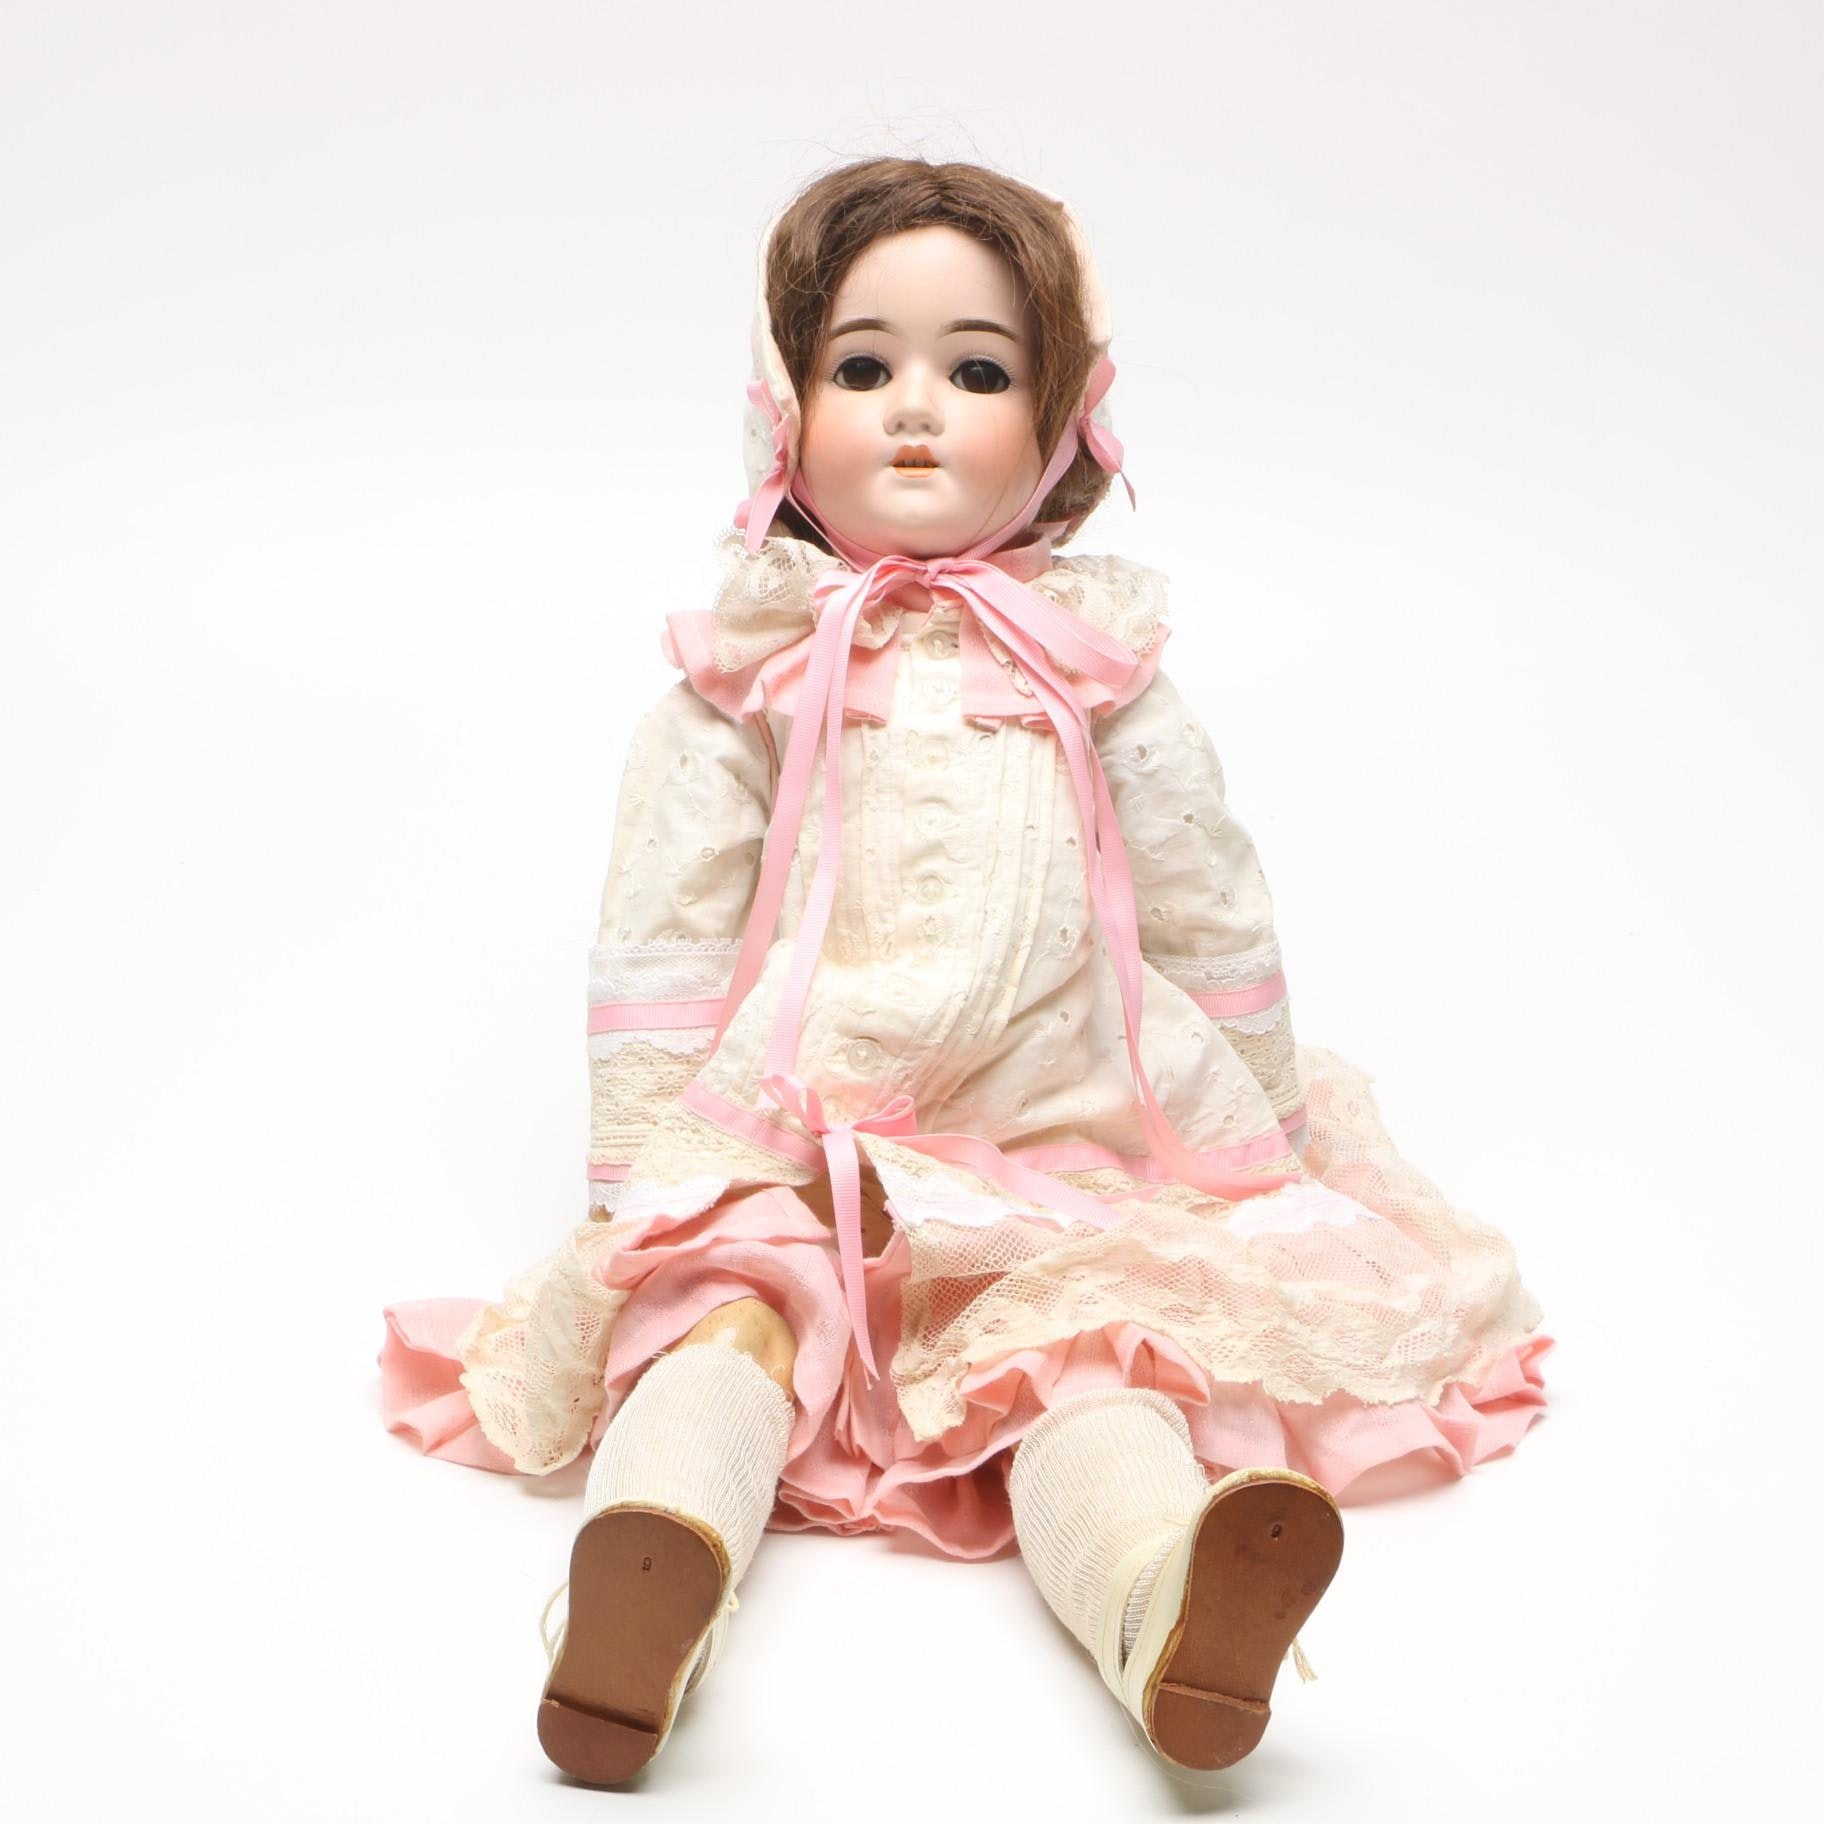 Antique Schoenau & Hoffmeister Bisque Socket Head and Composition Body Doll